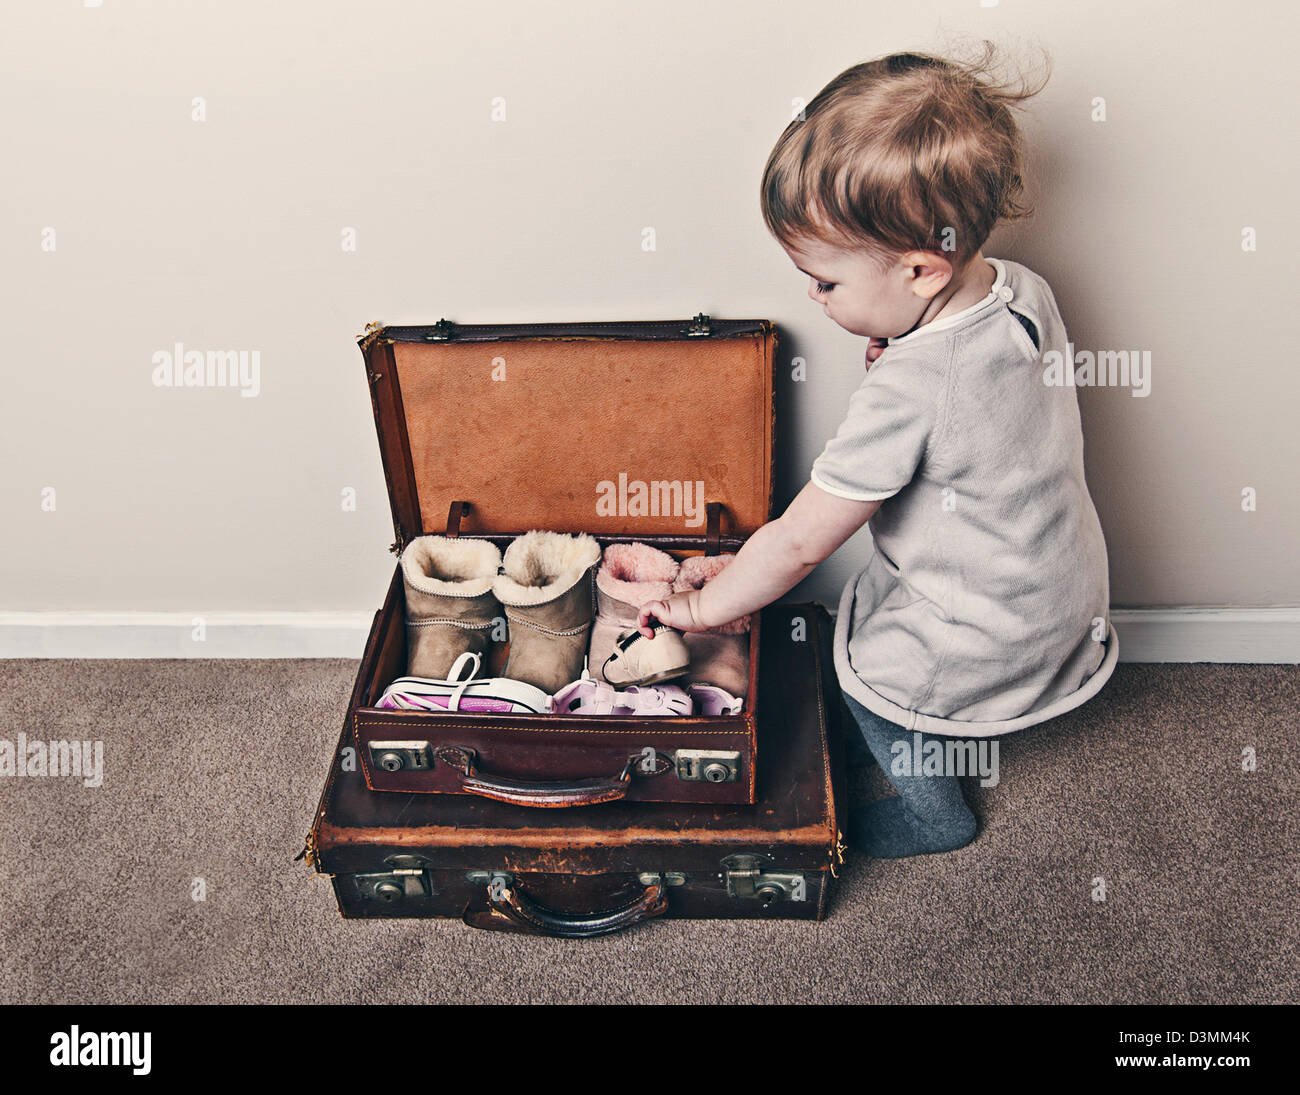 Baby Girl Packing Shoes into Case - Stock Image